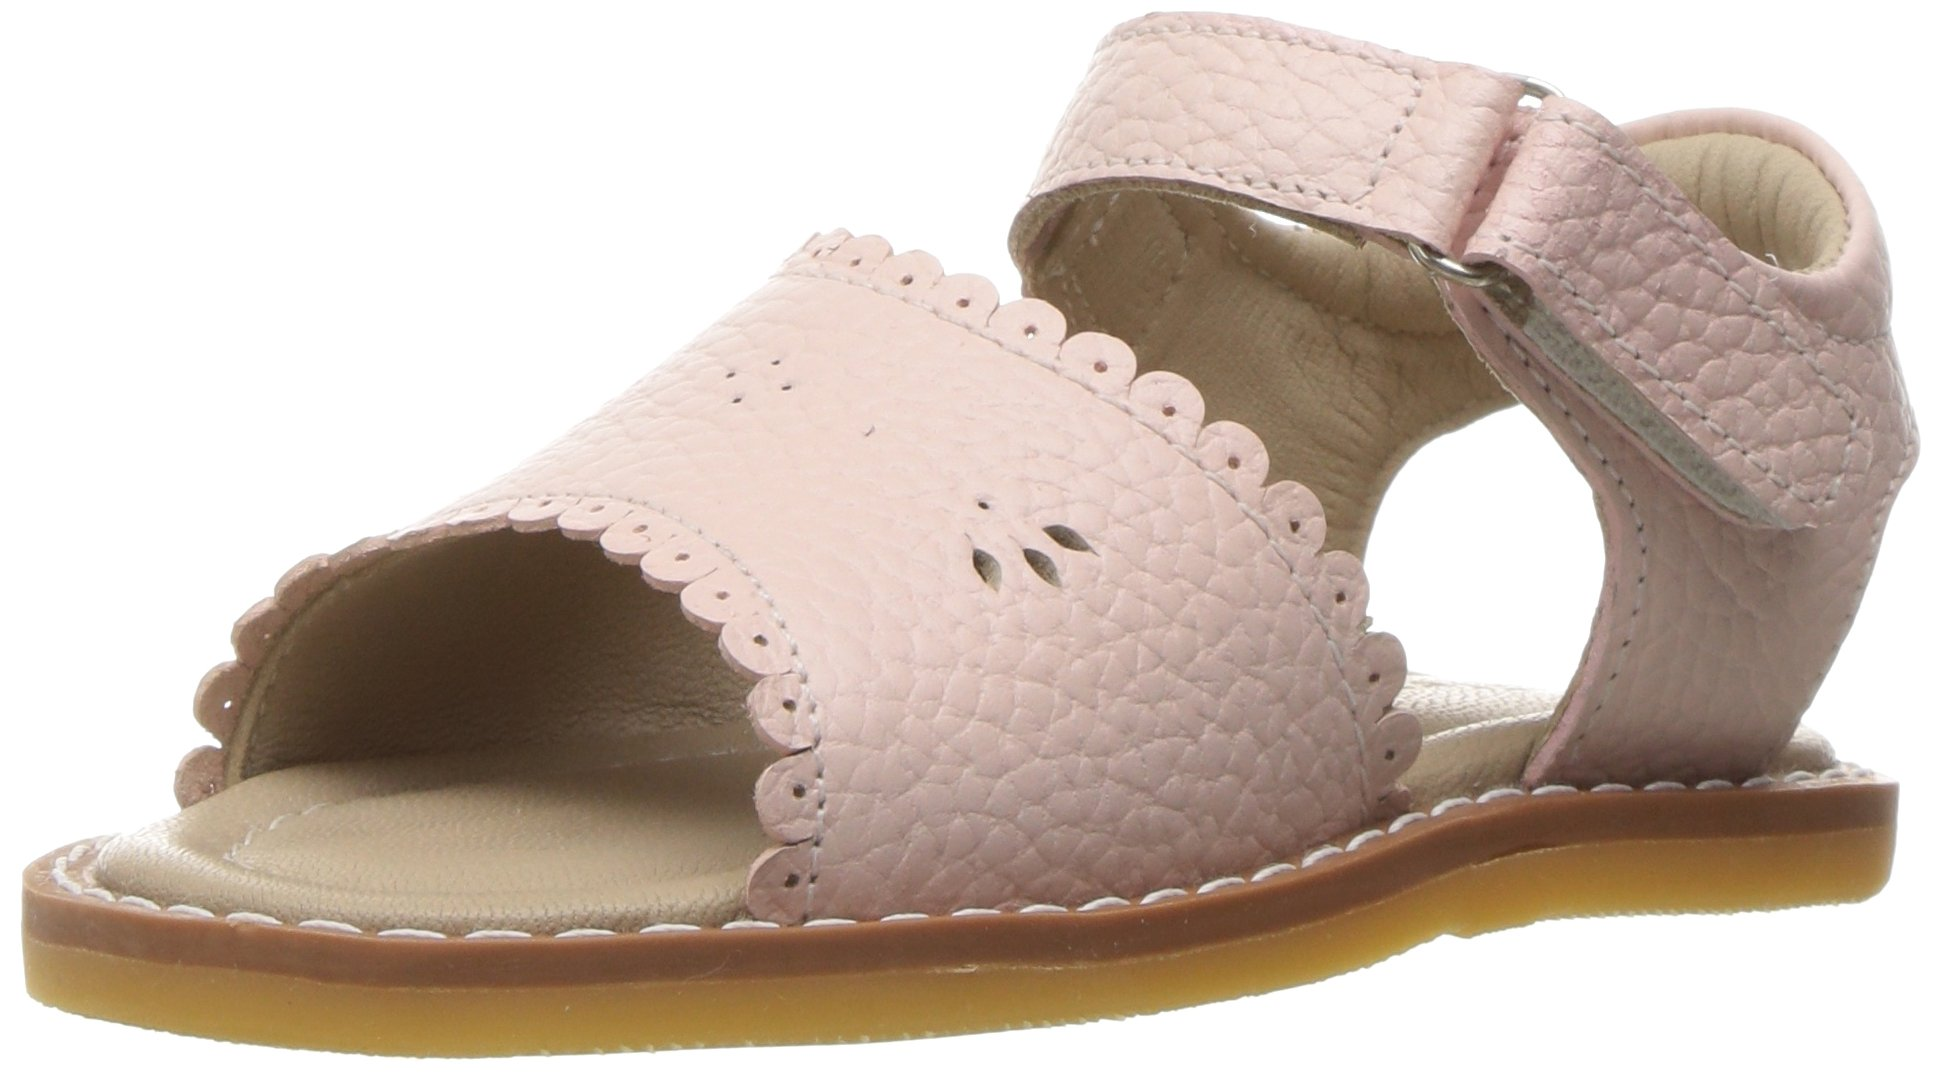 Elephantito Girls' Classic Sandal, Floter Pink, 11 M US Little Kid by Elephantito